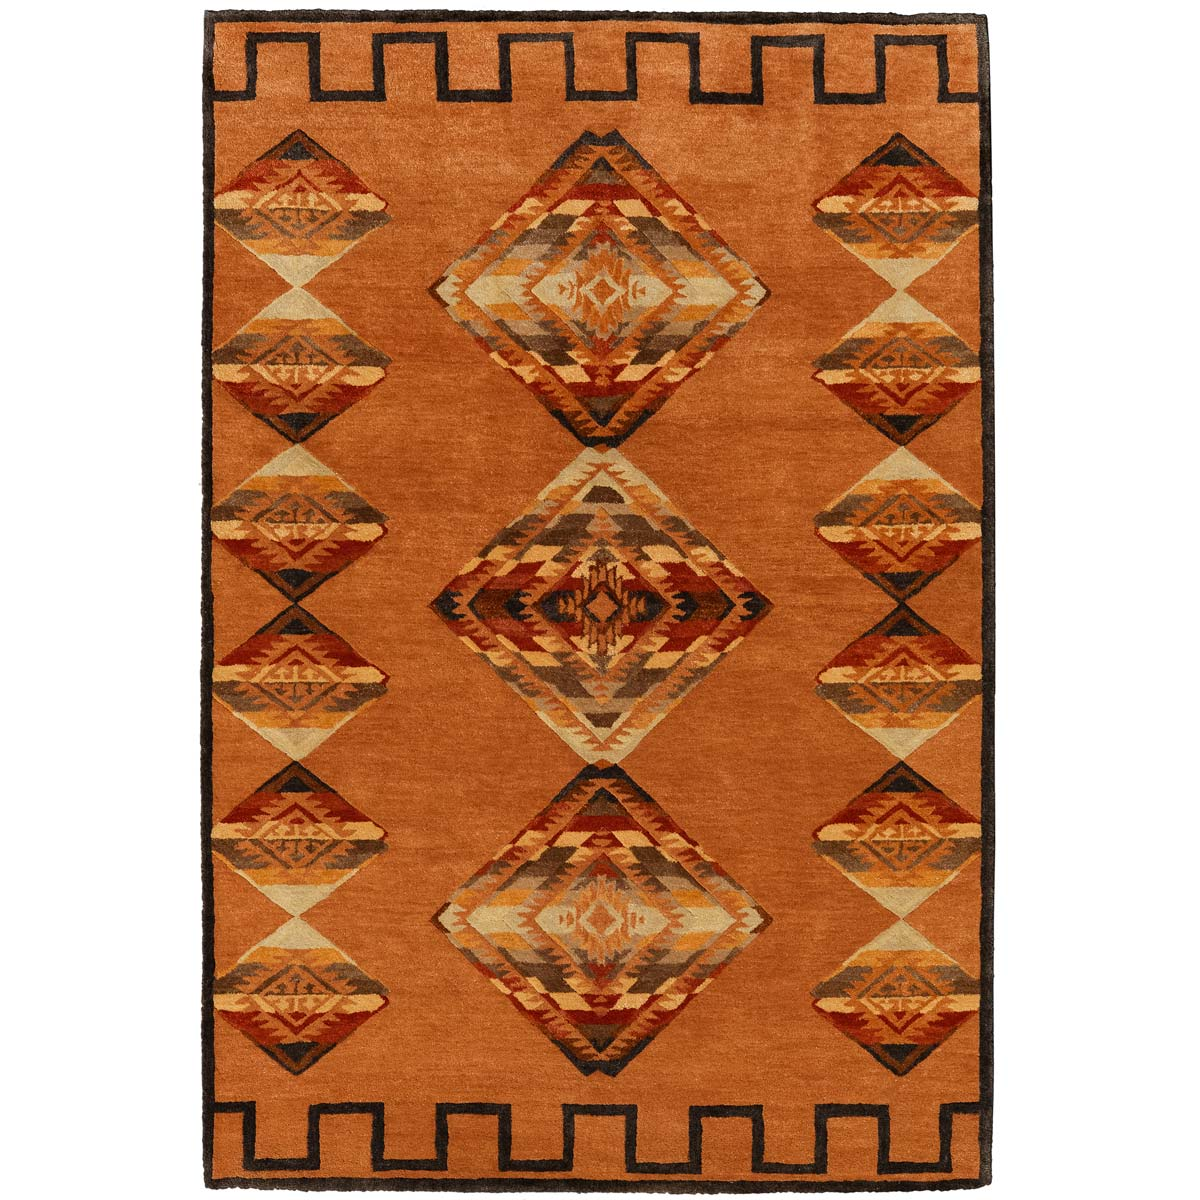 Desert Diamond Terra Cotta Rug - 5 x 7